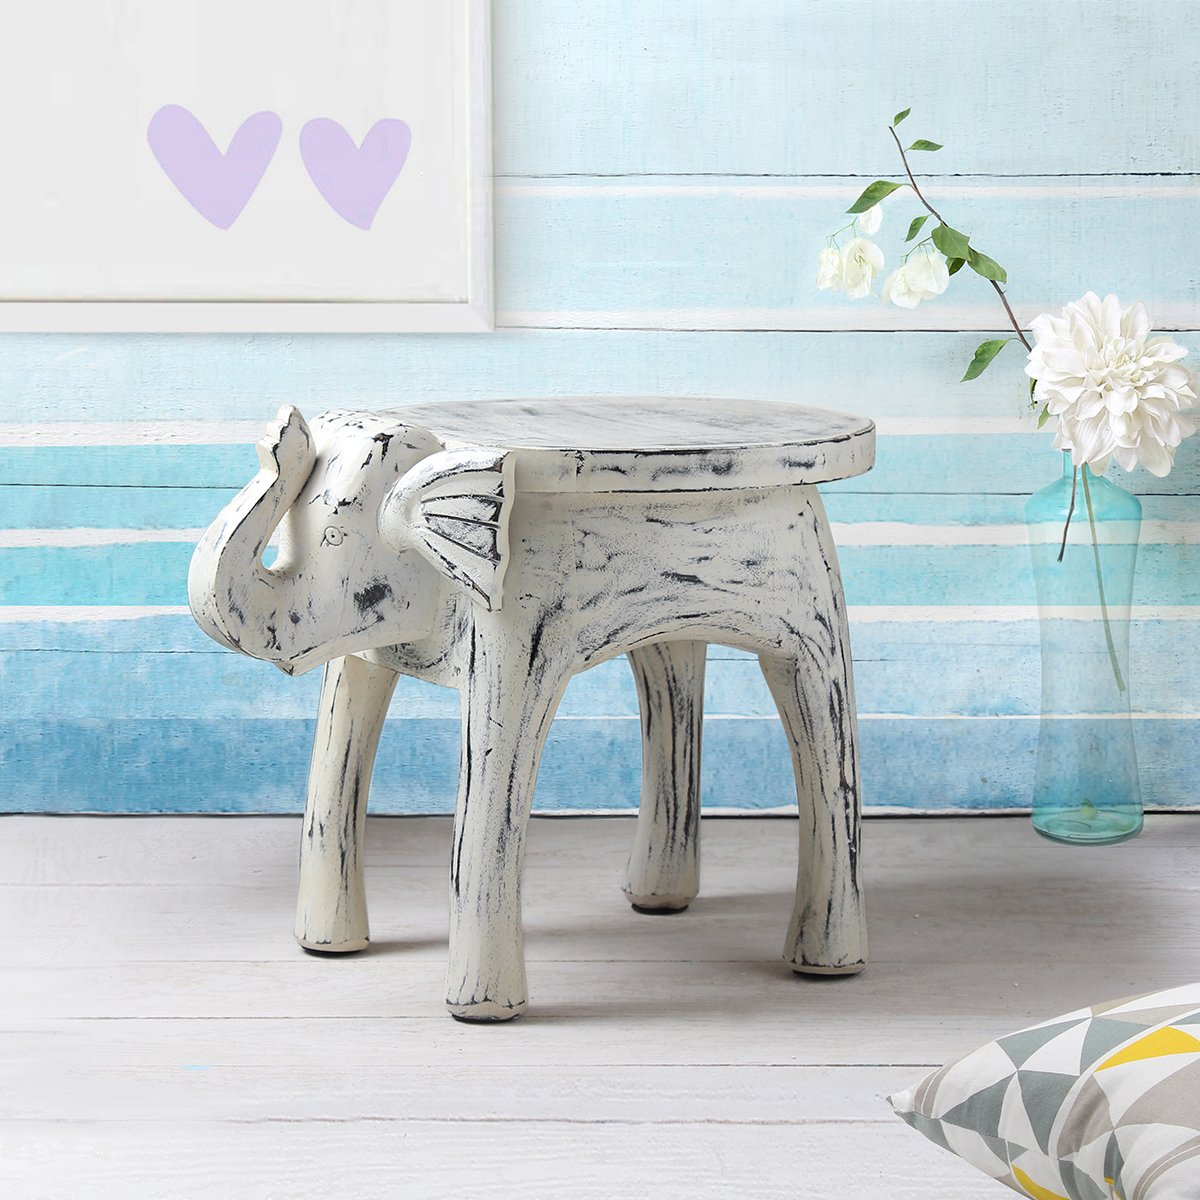 Wooden Side Table End Table Round Bedside Sofa Stool White Distressed Finish Elephant Head Design Home Kids Room Furniture Shabby Chic Decor - 18 x 13 x 14 inches by Store Indya (Image #1)